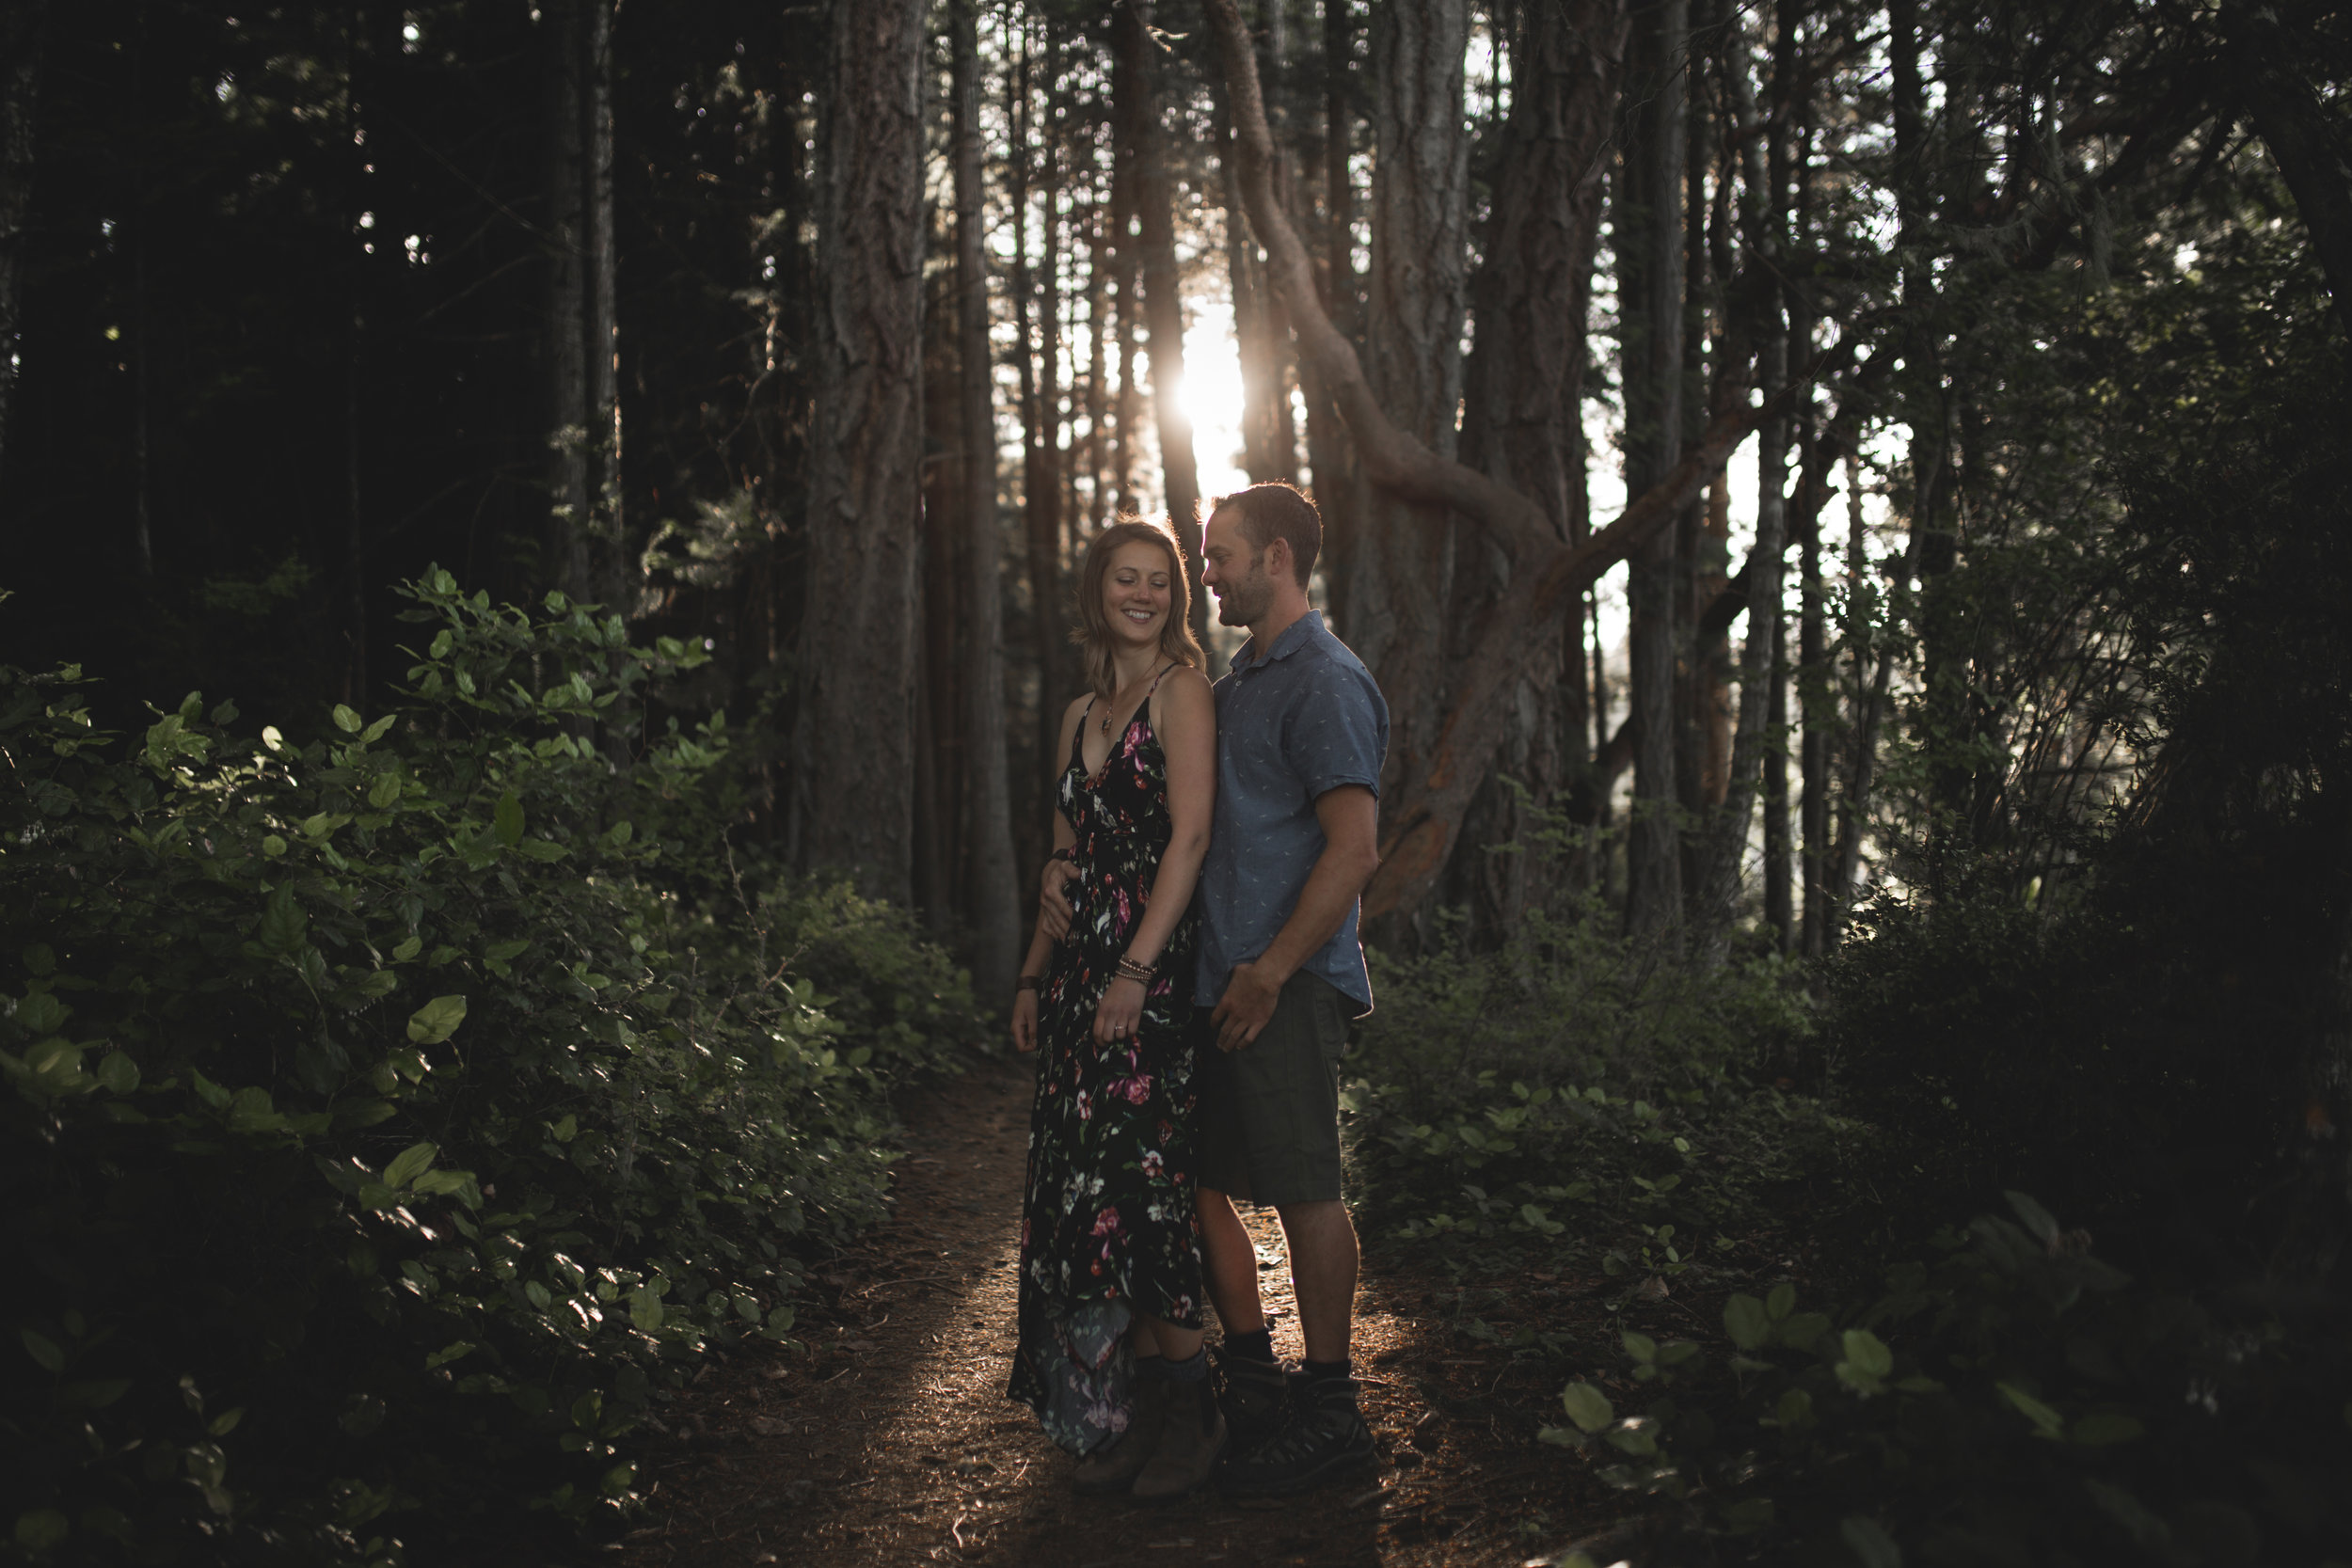 21-Adam-Ziorio-Photography-Engagement-Hangoutsession-East-Sooke-Park-Victoria-BC-Telsa&Willy.jpg